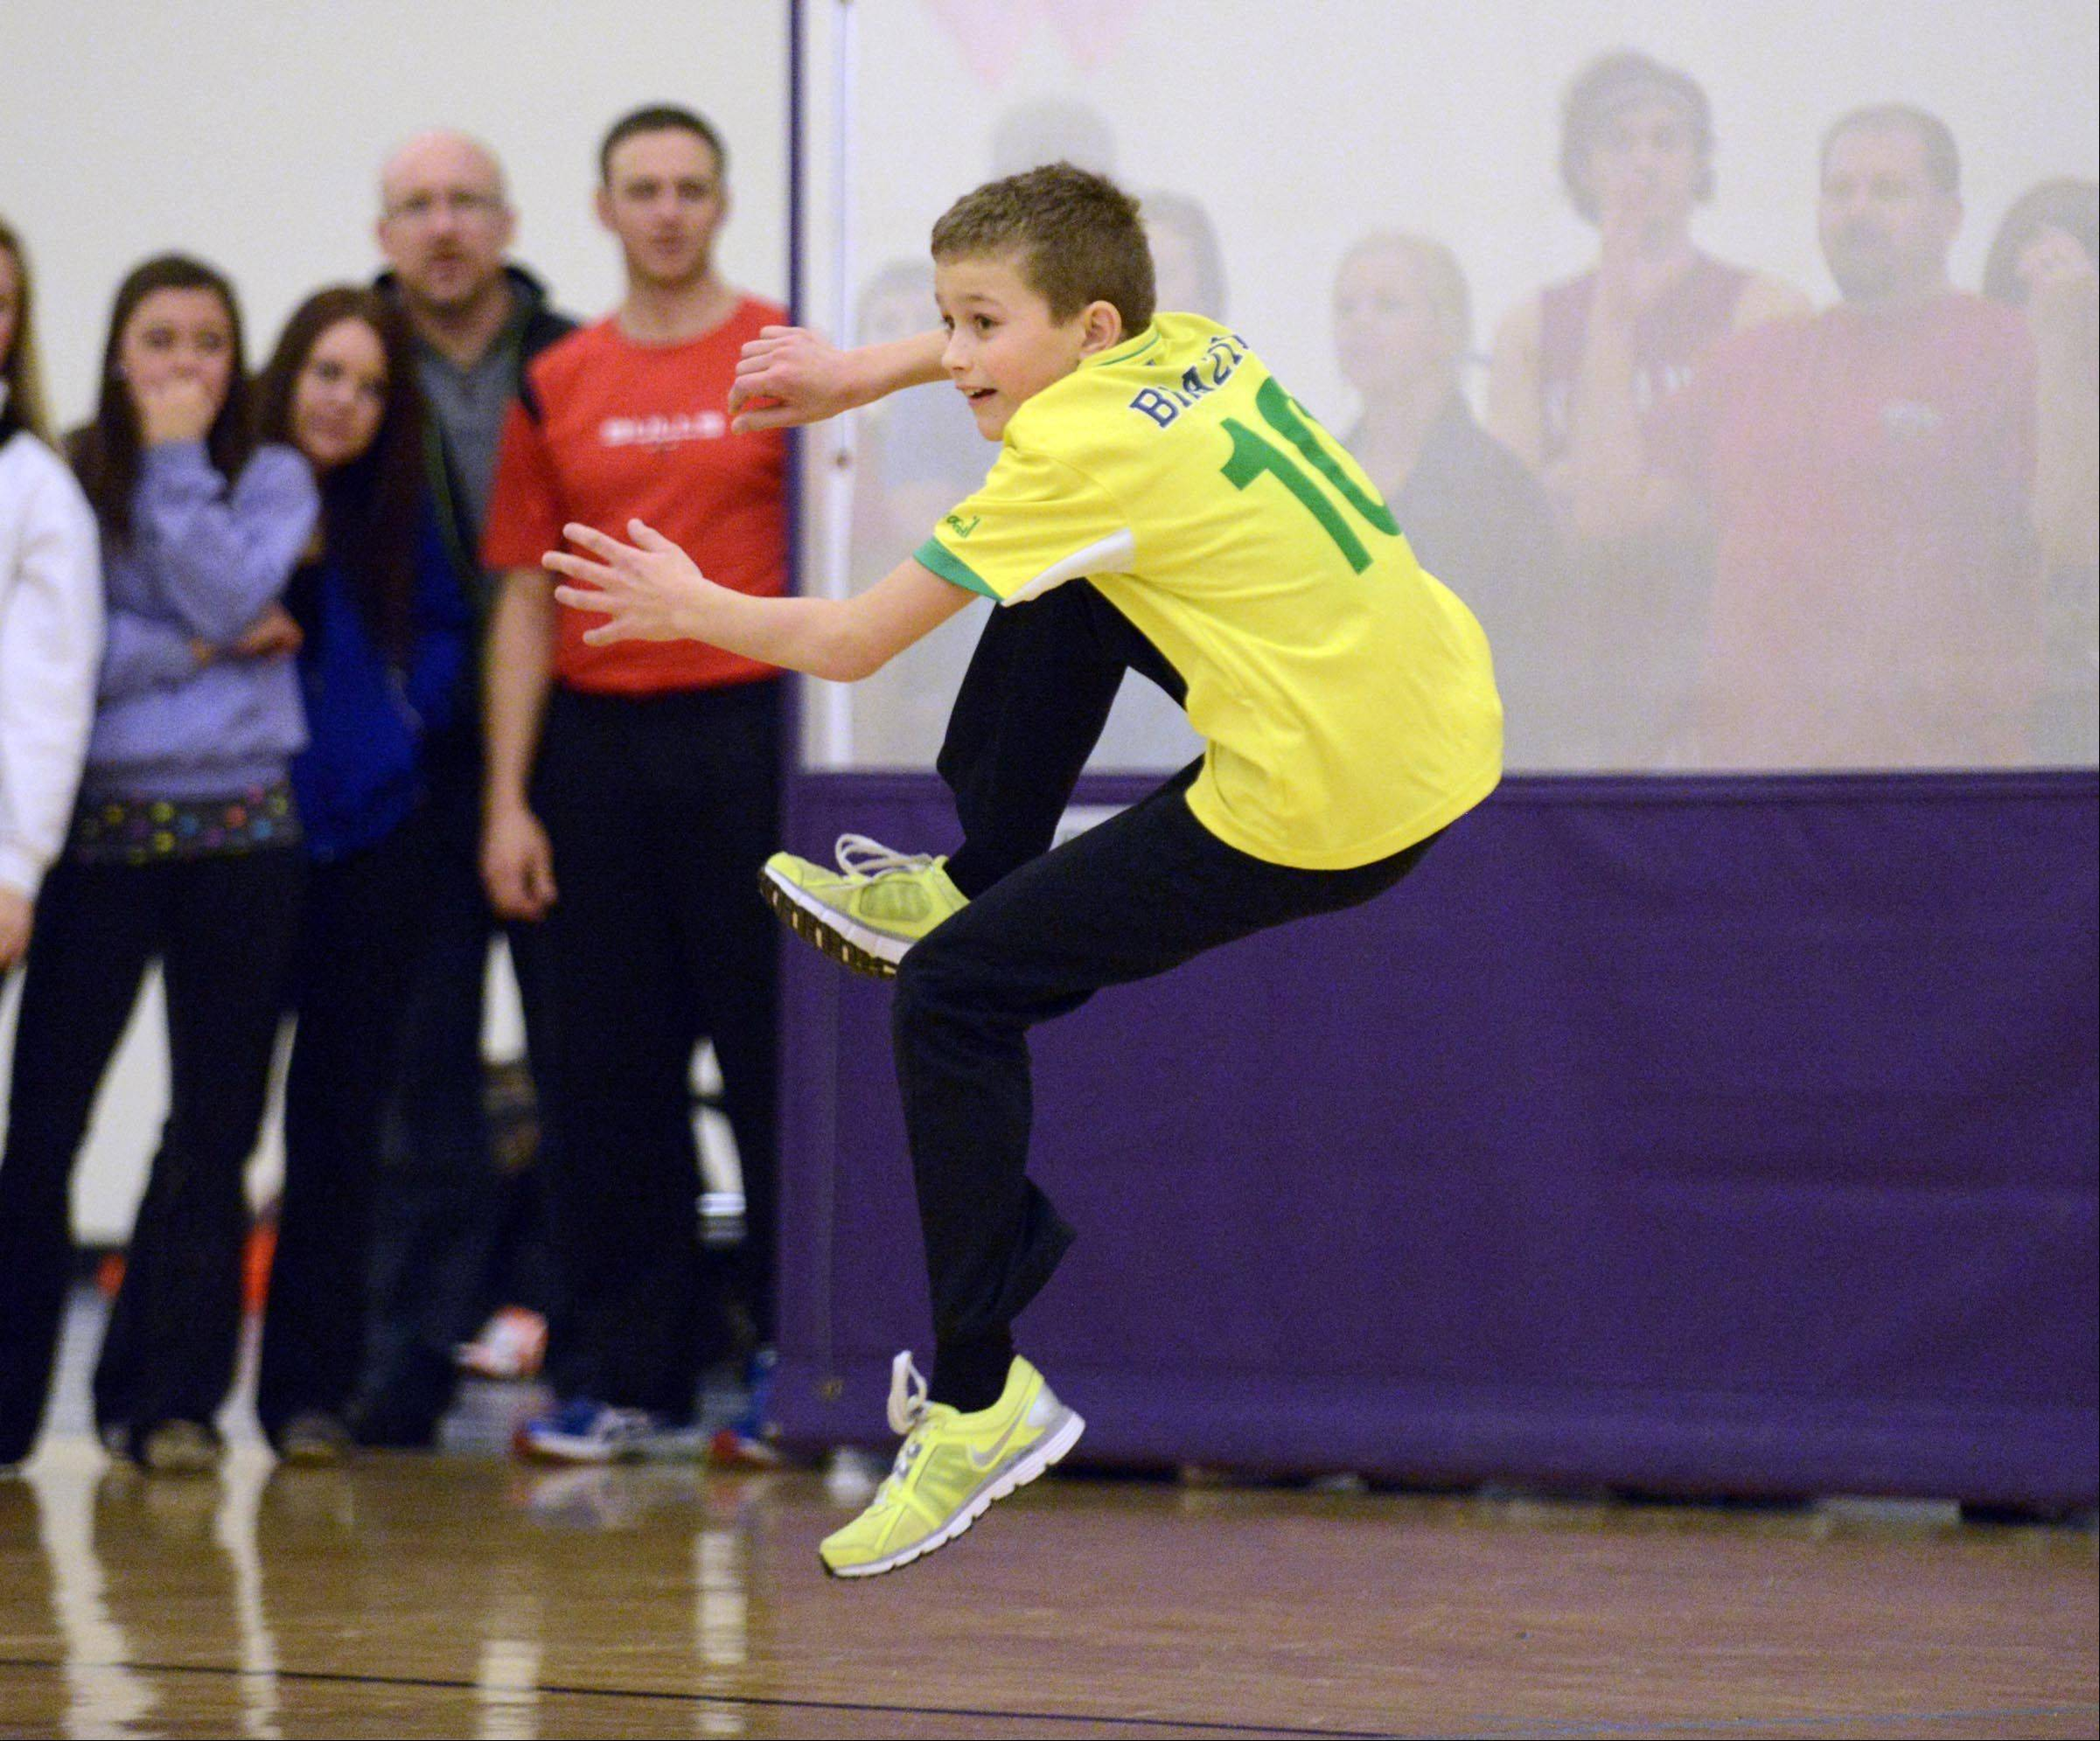 Thomas Mathson contorts himself to avoid getting hit during a dodgeball tournament at Hampshire High School Sunday. The 12-year-old was playing on a team of friends called Bananas in the fourth annual tournament to benefit local families in need. The Bananas won their first two games against much older teams of competitors.